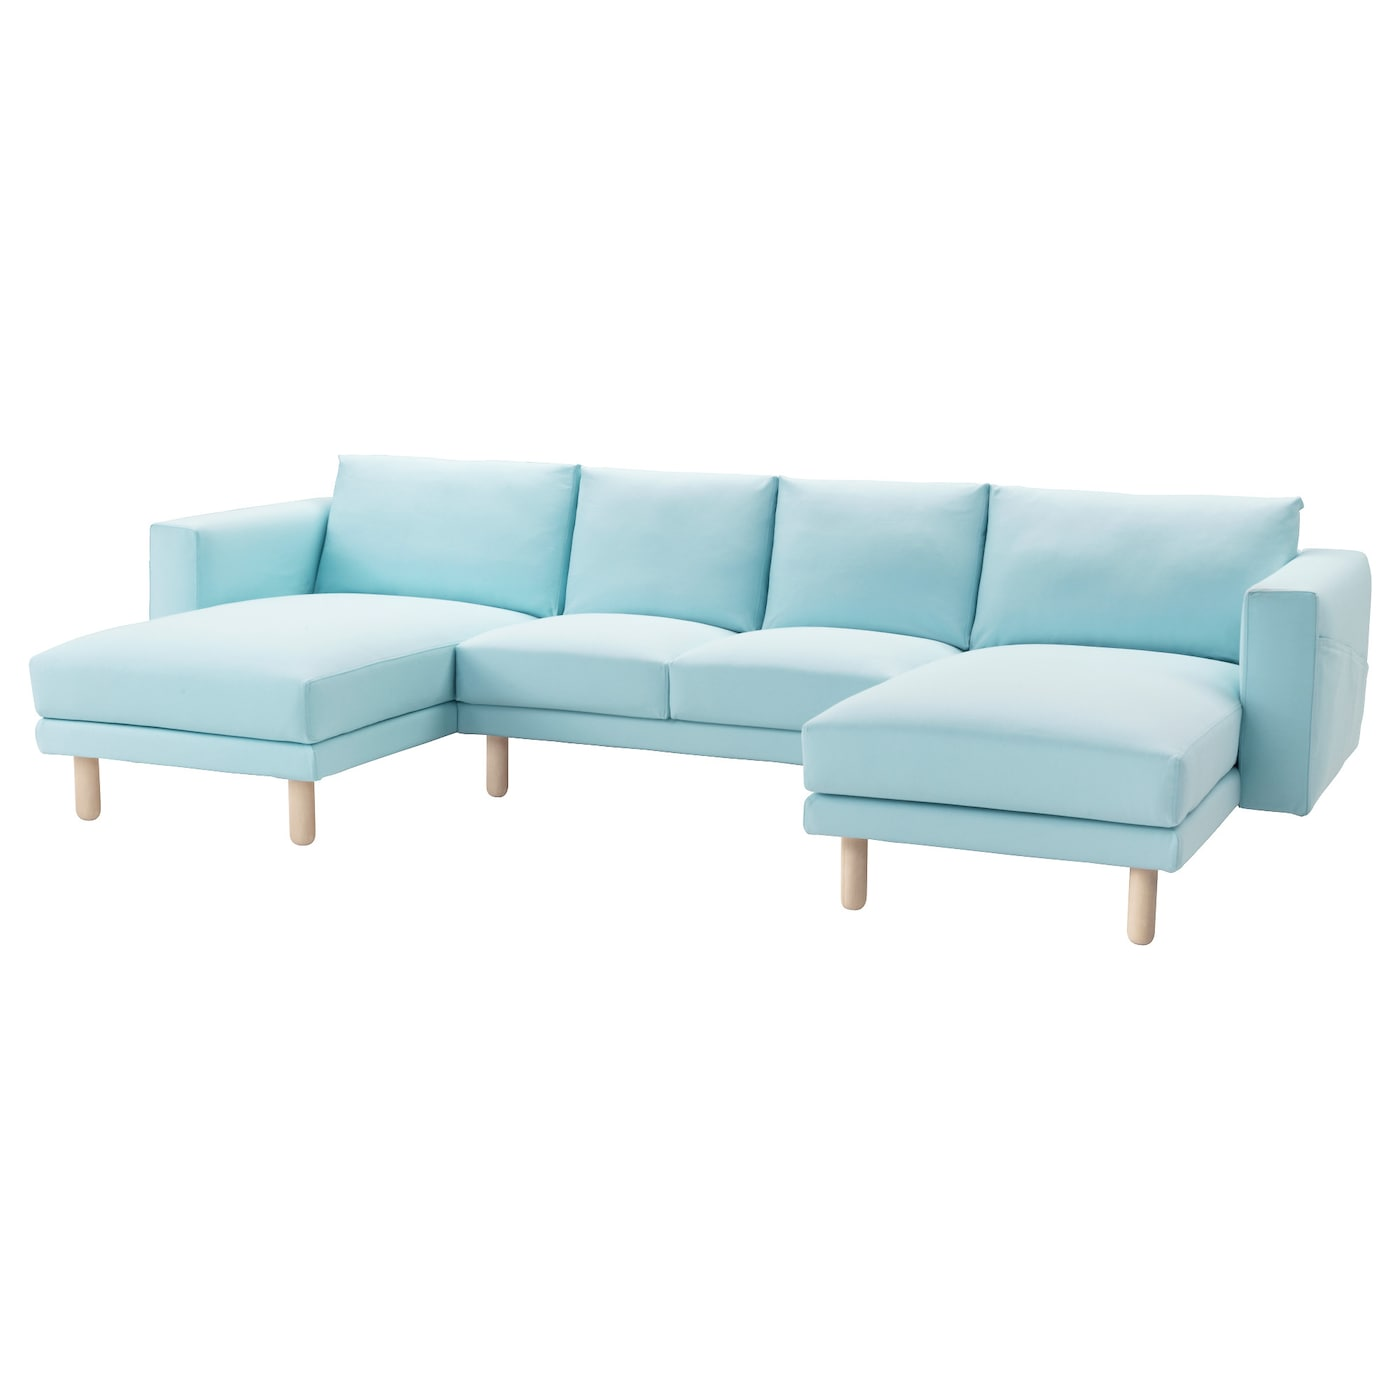 Norsborg 2 seat sofa with 2 chaise longues gr sbo light for 2 5 seater sofa with chaise